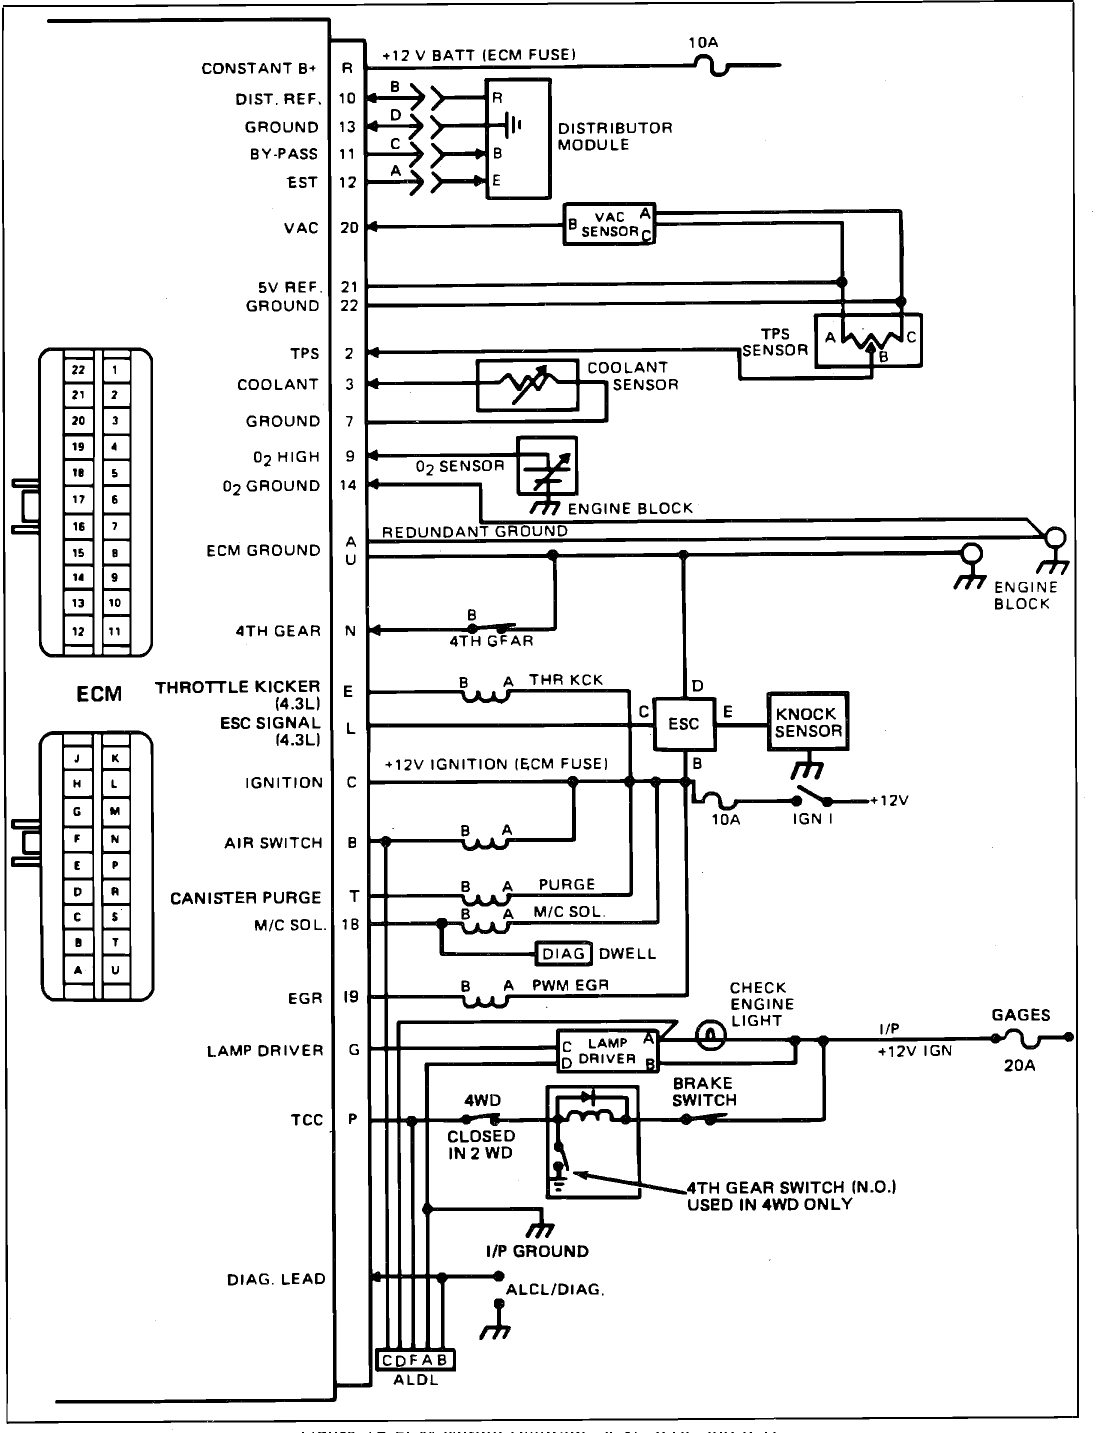 hight resolution of 91 chevy lumina wiring diagram images gallery